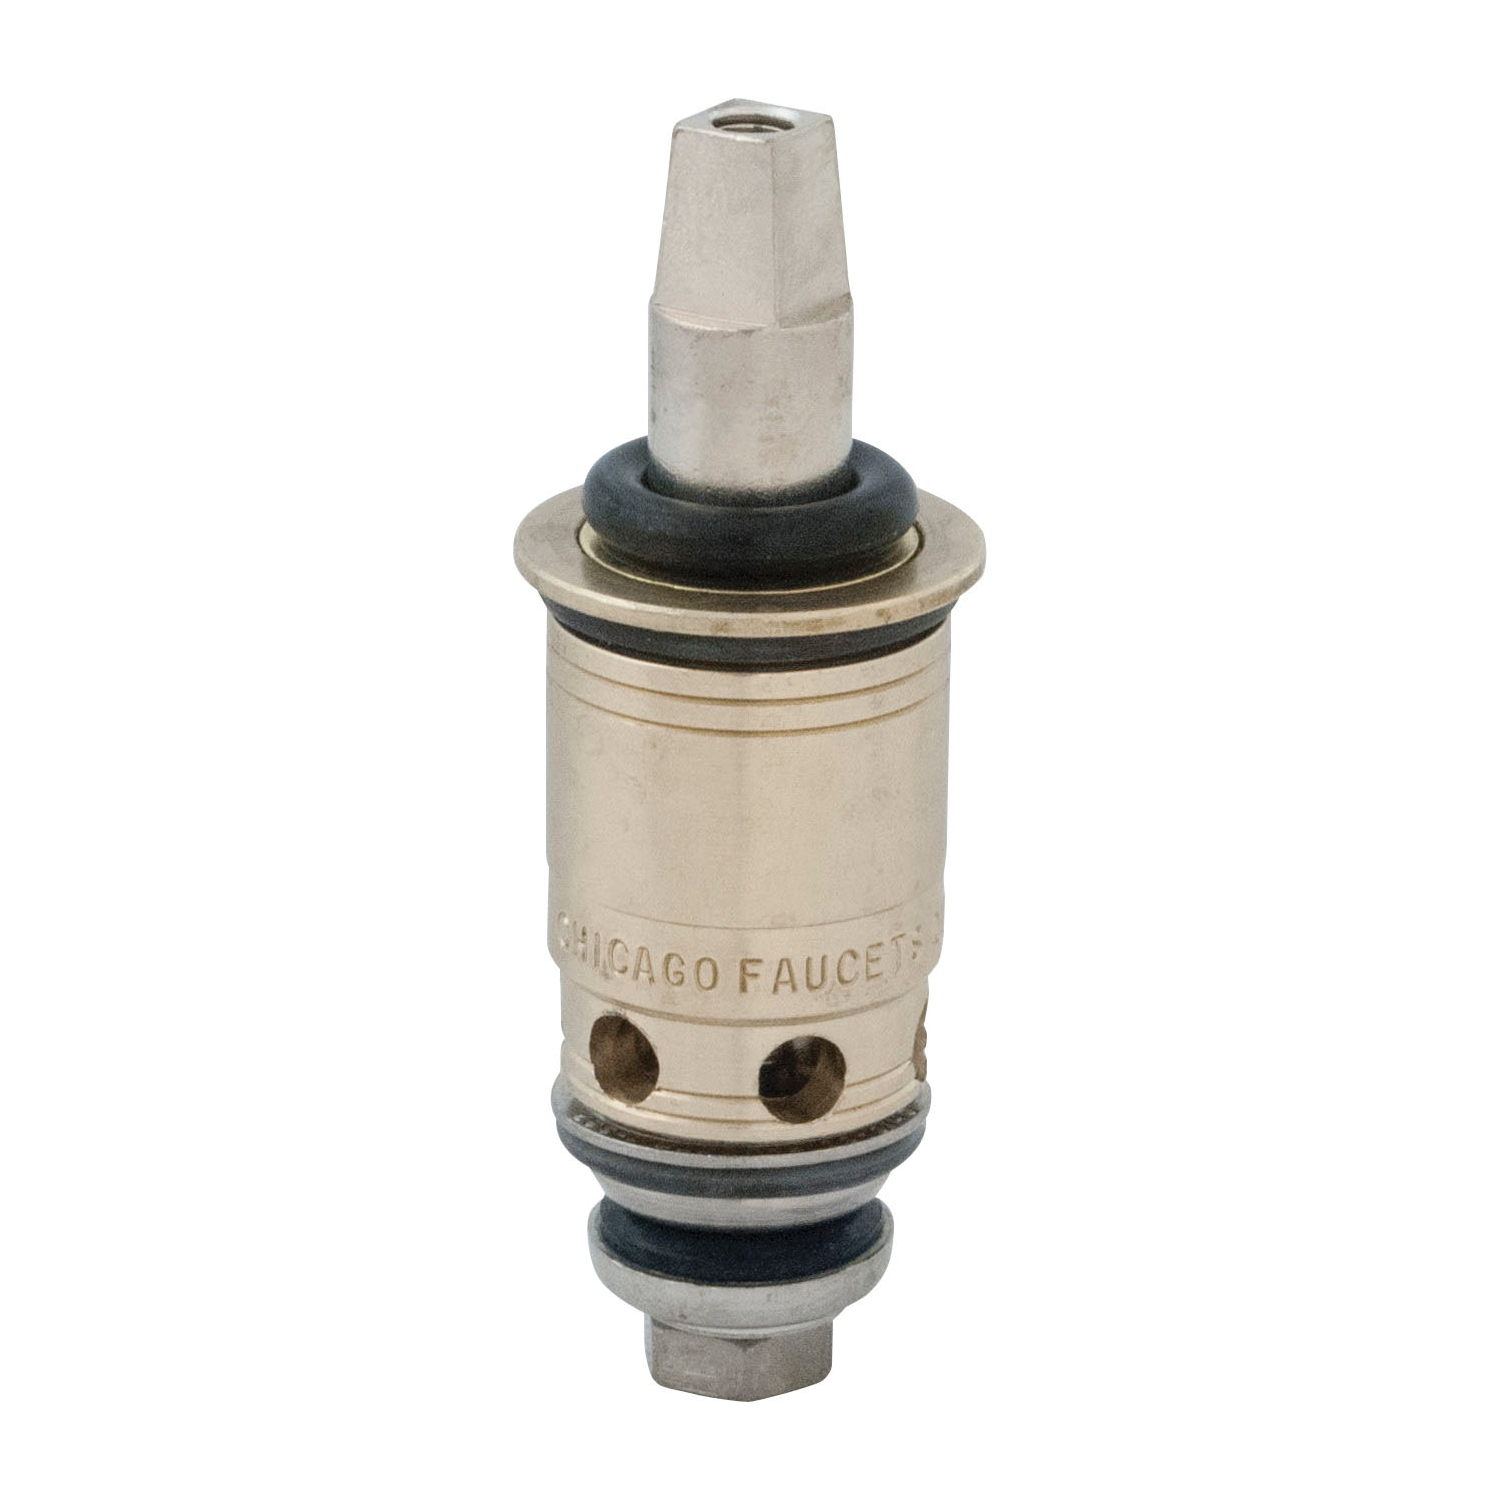 Chicago Faucet® Quaturn 1-100XTJKABNF Compression Operating Cartridge, 2-3/4 in H, Brass Filter, Domestic